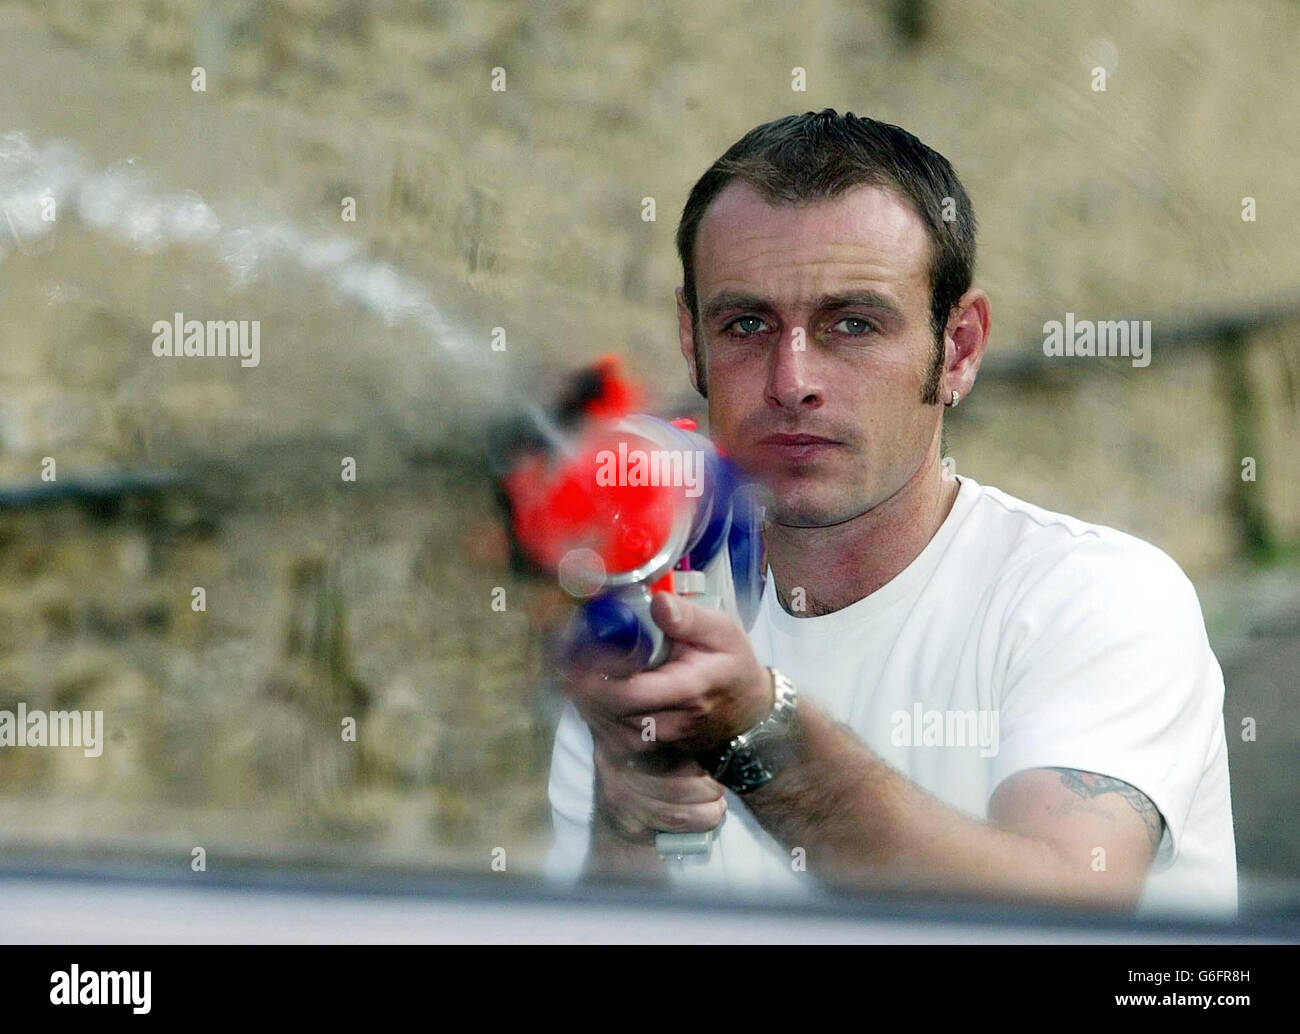 Waterpistol fight leads to CS Spray use - Stock Image